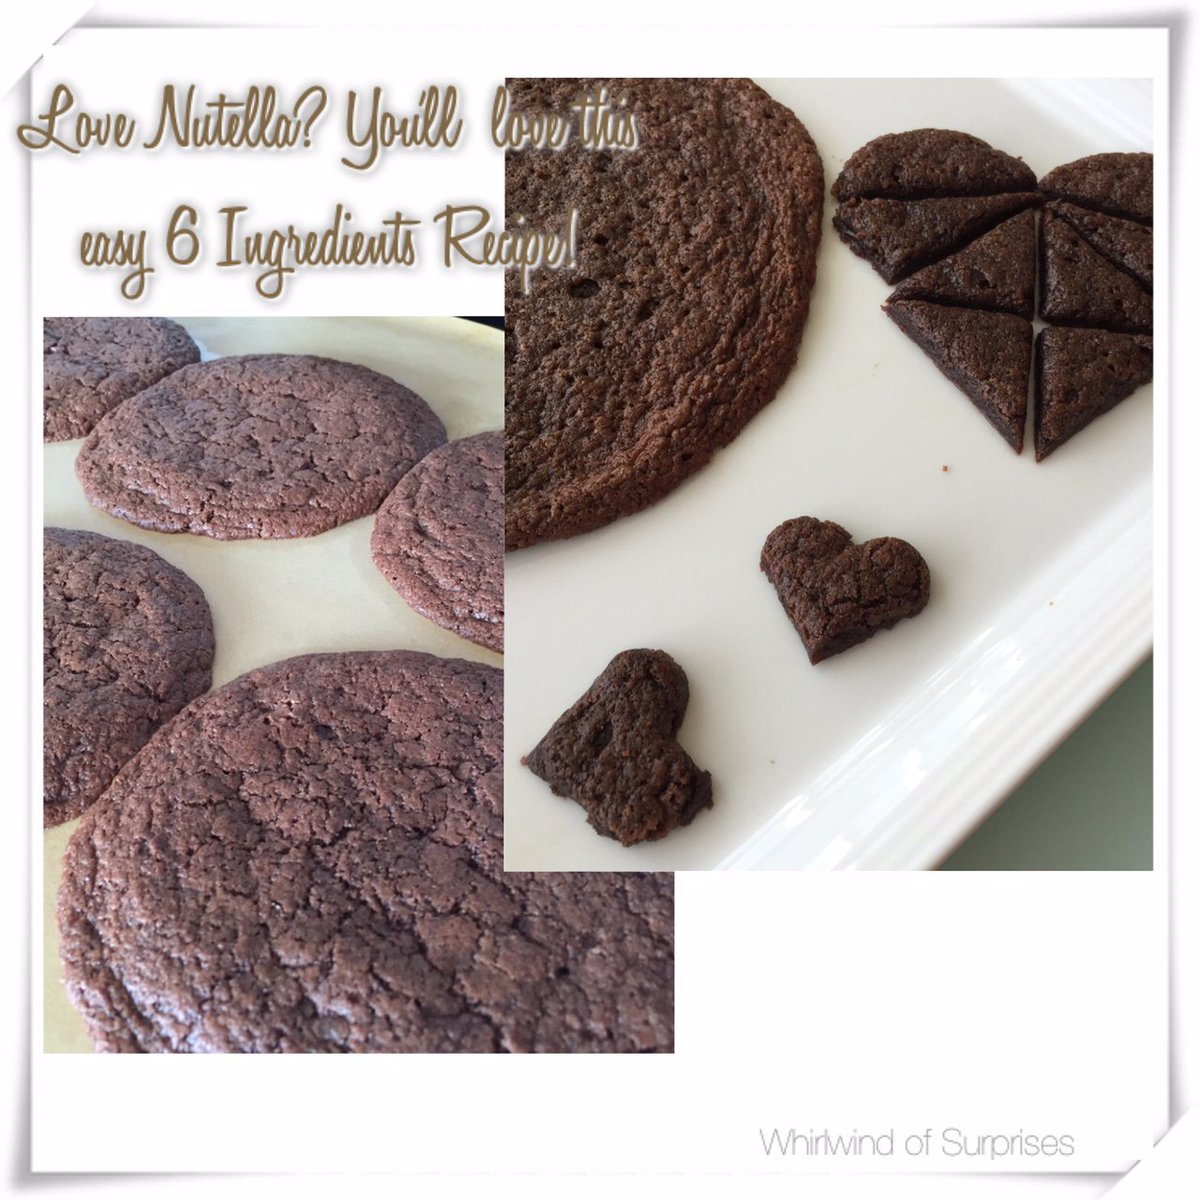 Easy Nutella Cookie recipes